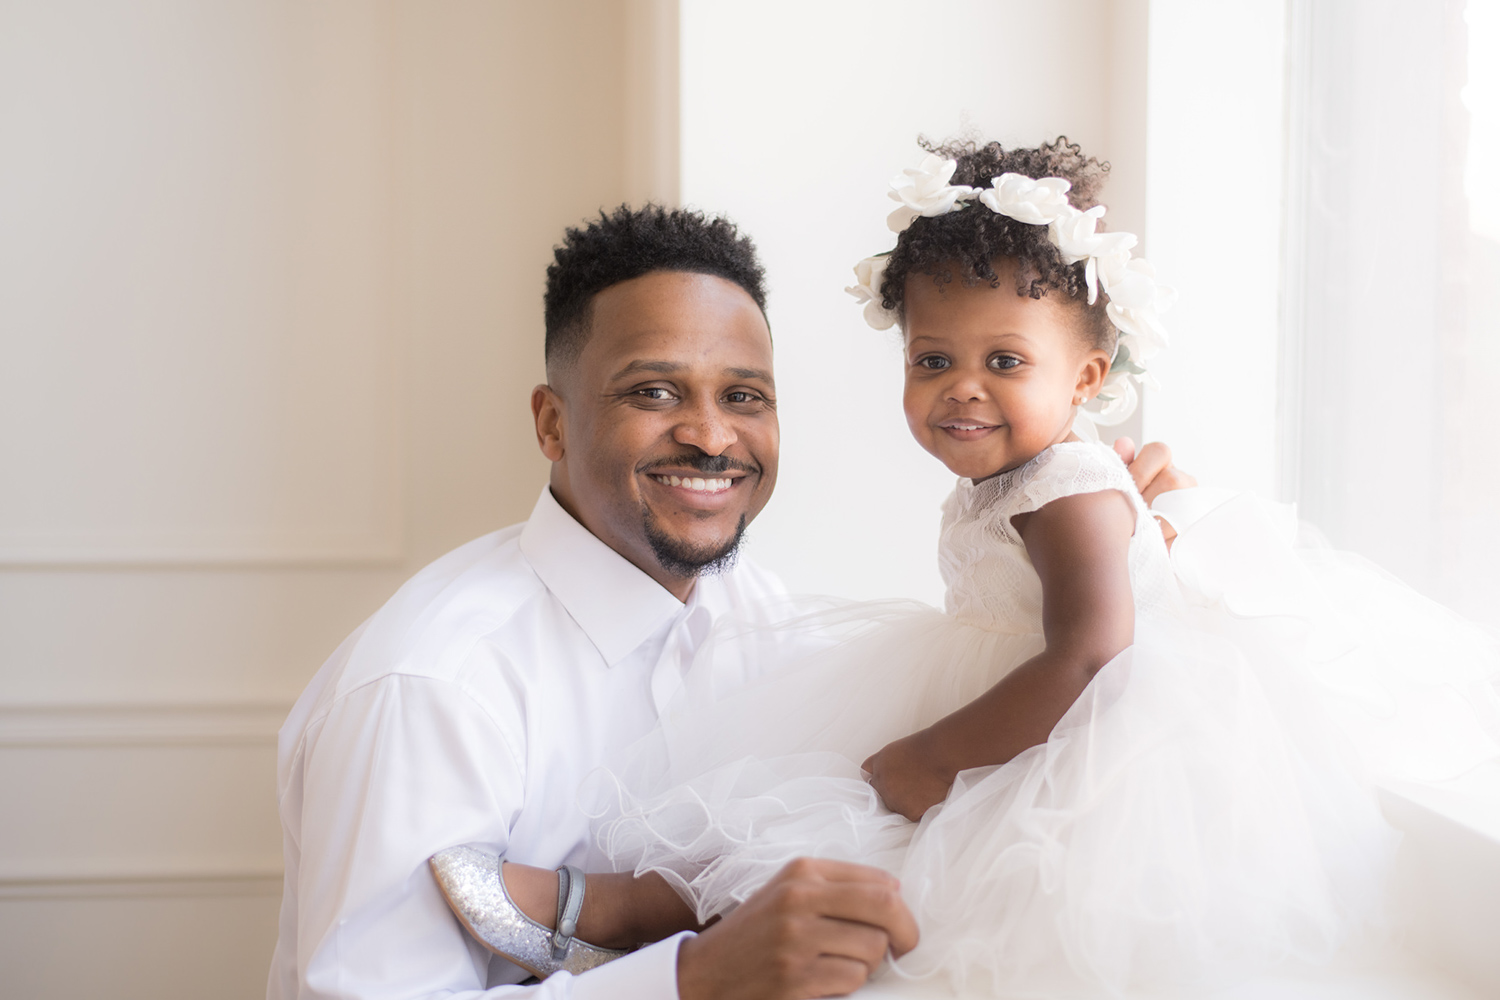 Chicago baby wears a white dress and takes a photo with her father.